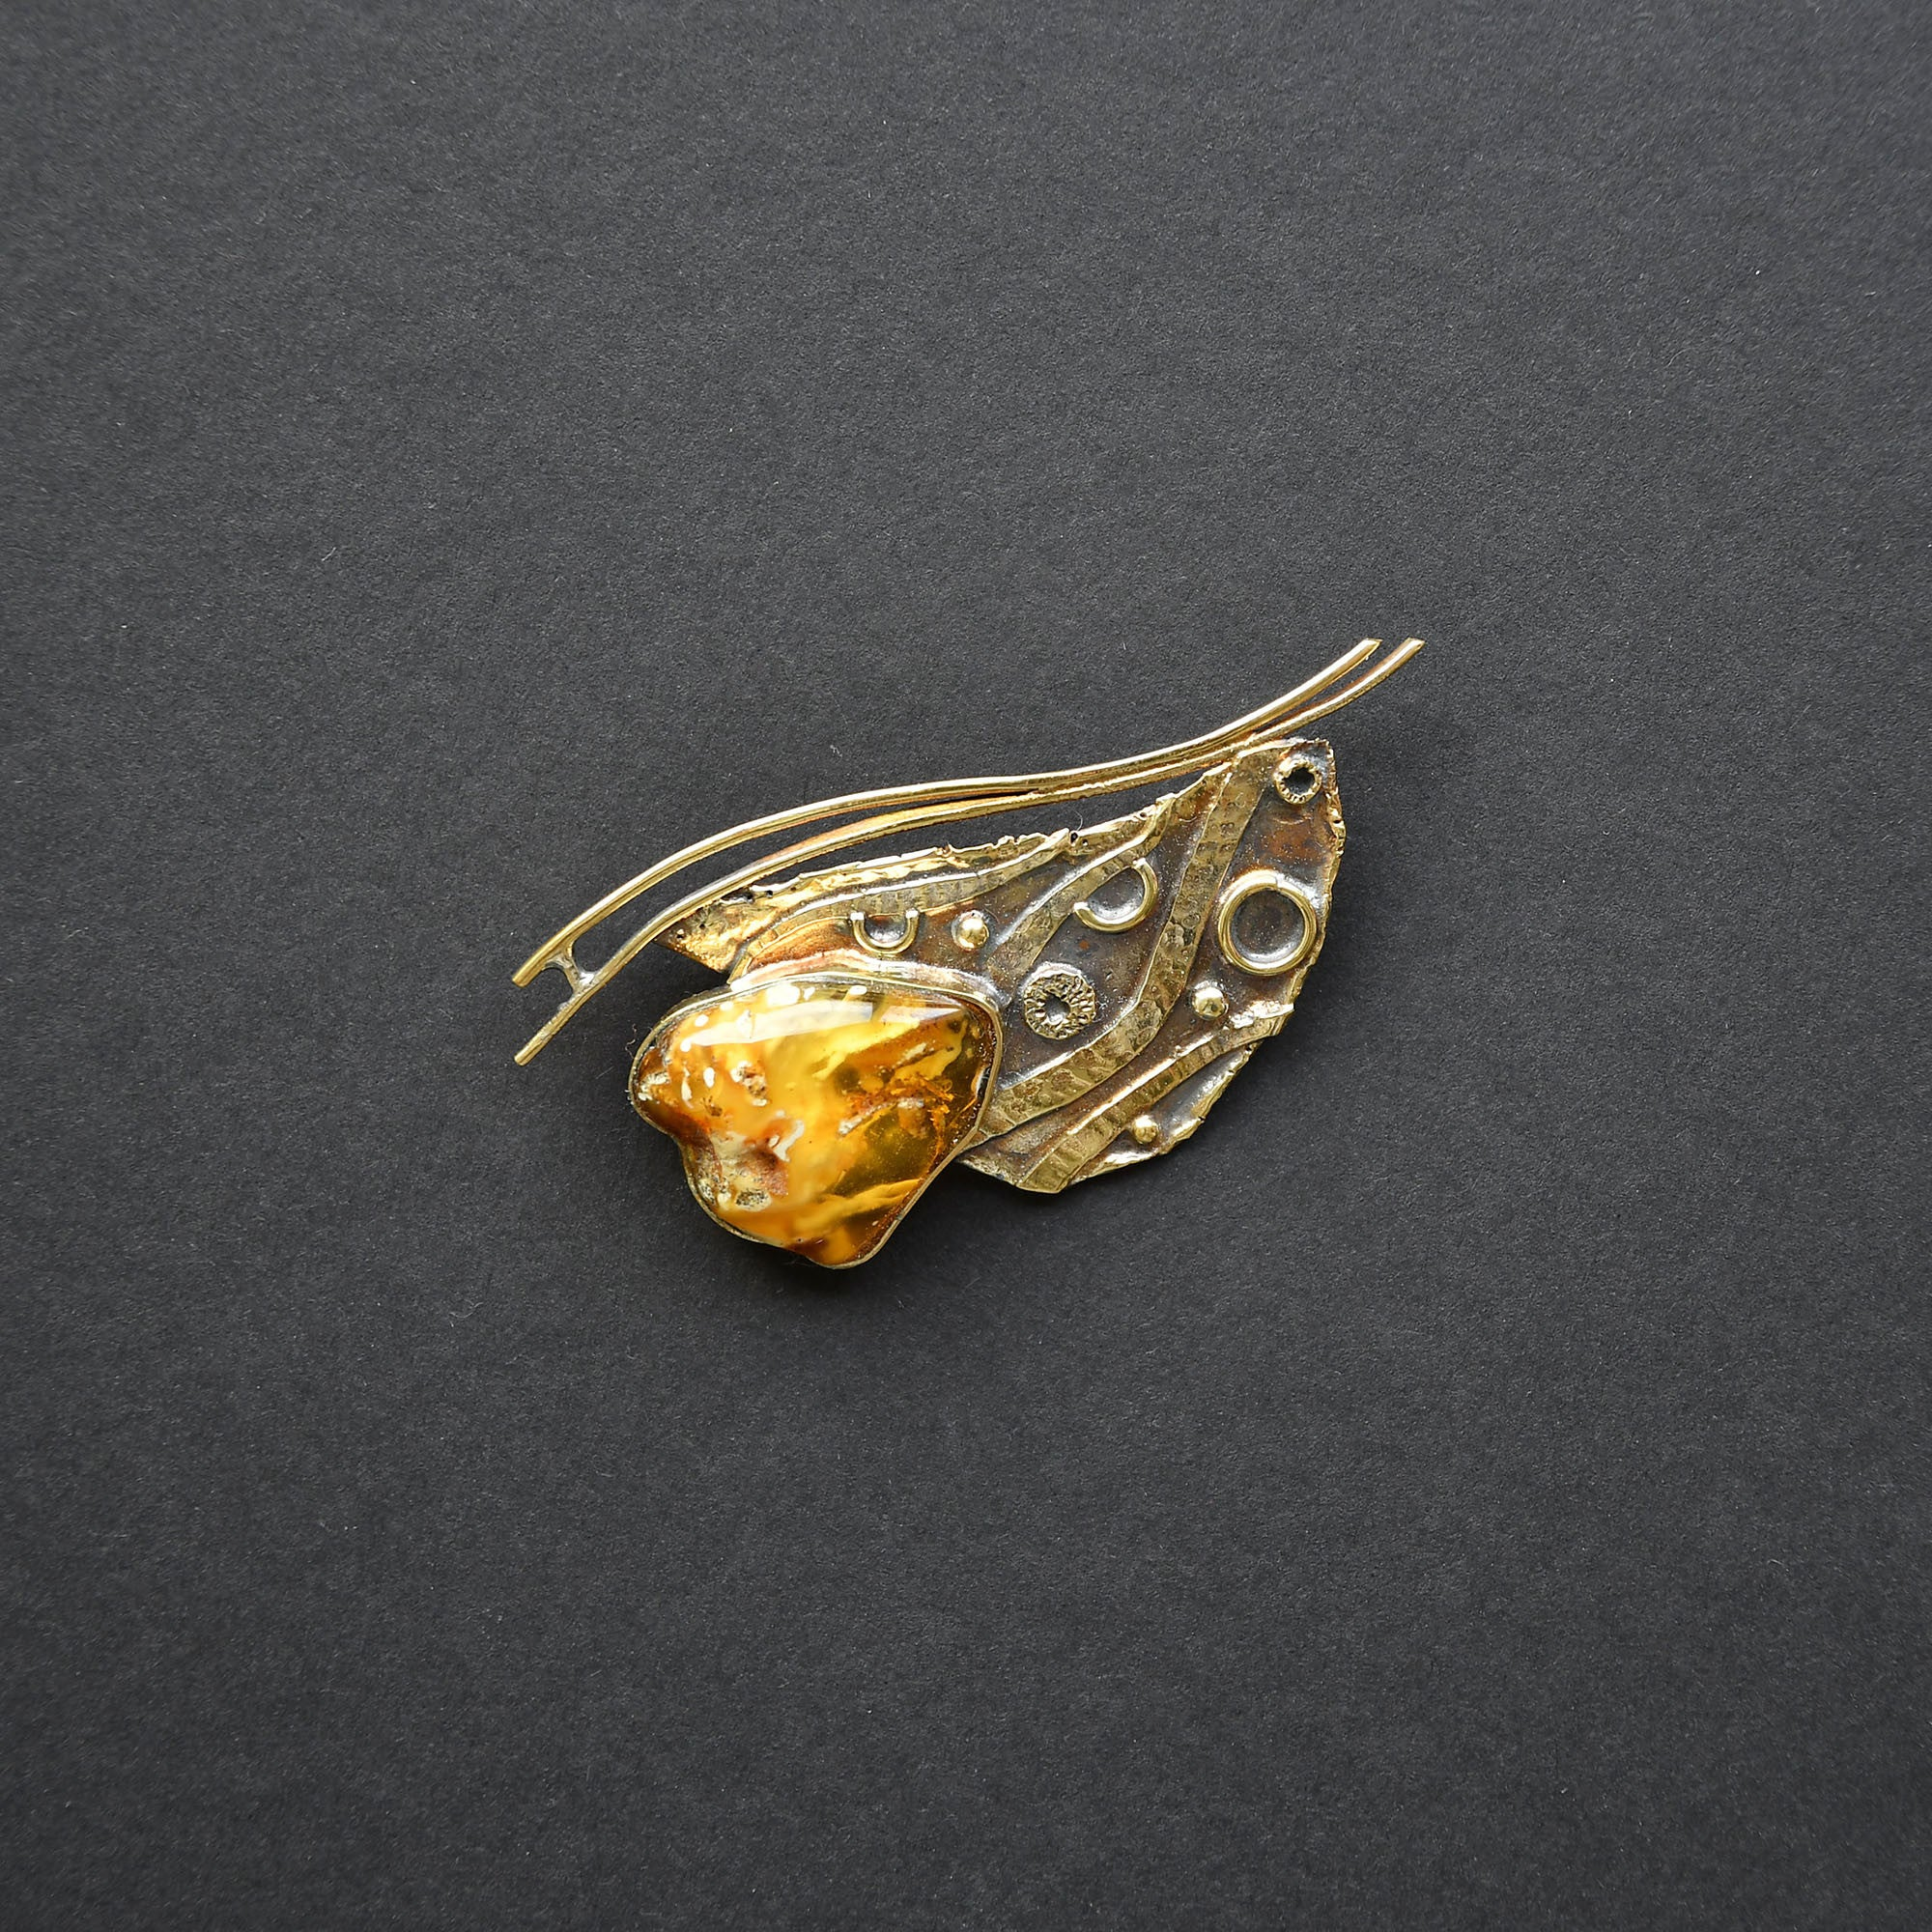 Brass brooch with a golden amber